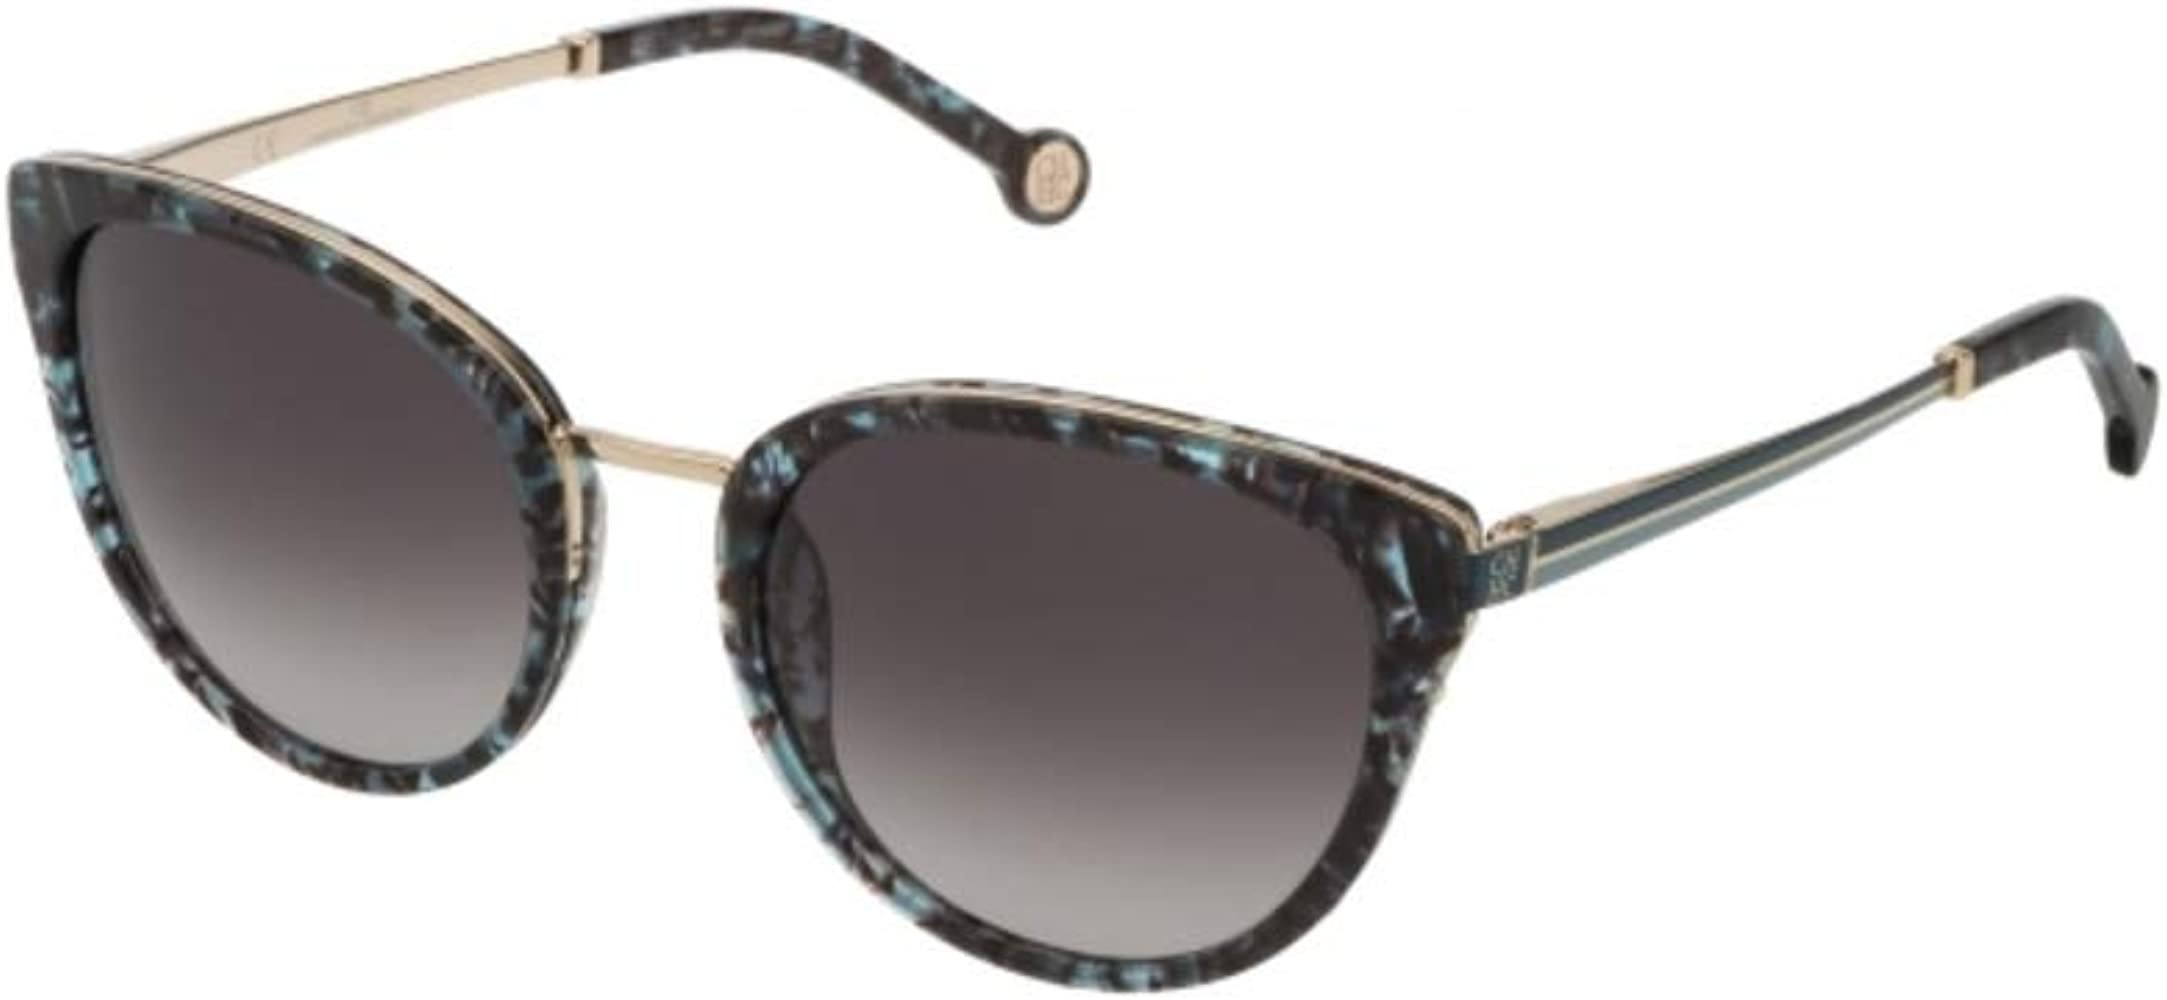 Carolina Herrera SHE120 SH.ROSE GOLD (0863) - Gafas de sol ...